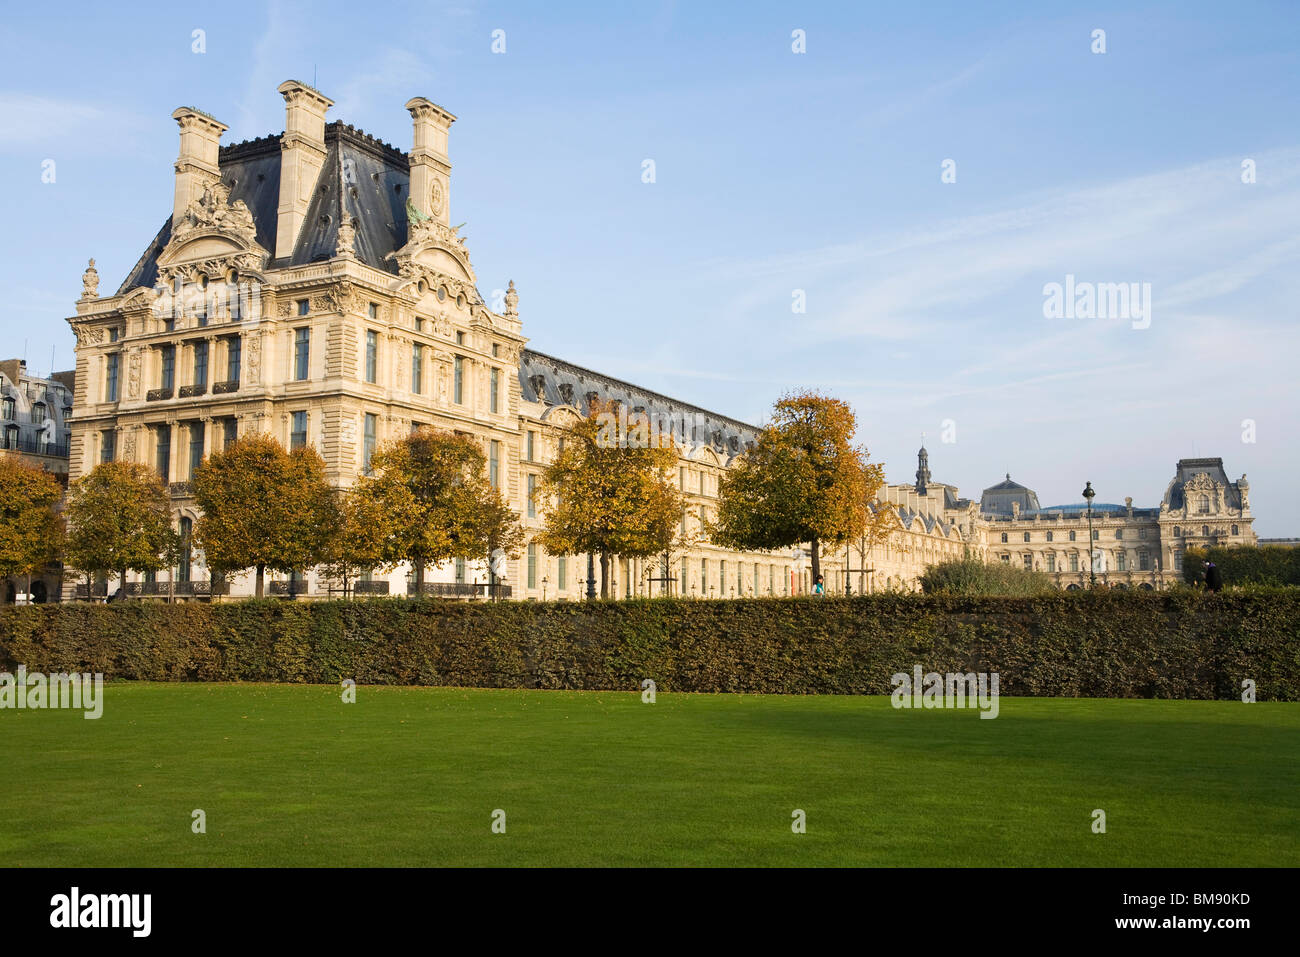 France, Paris, The Louvre viewed from the Jardin des Tuileries - Stock Image